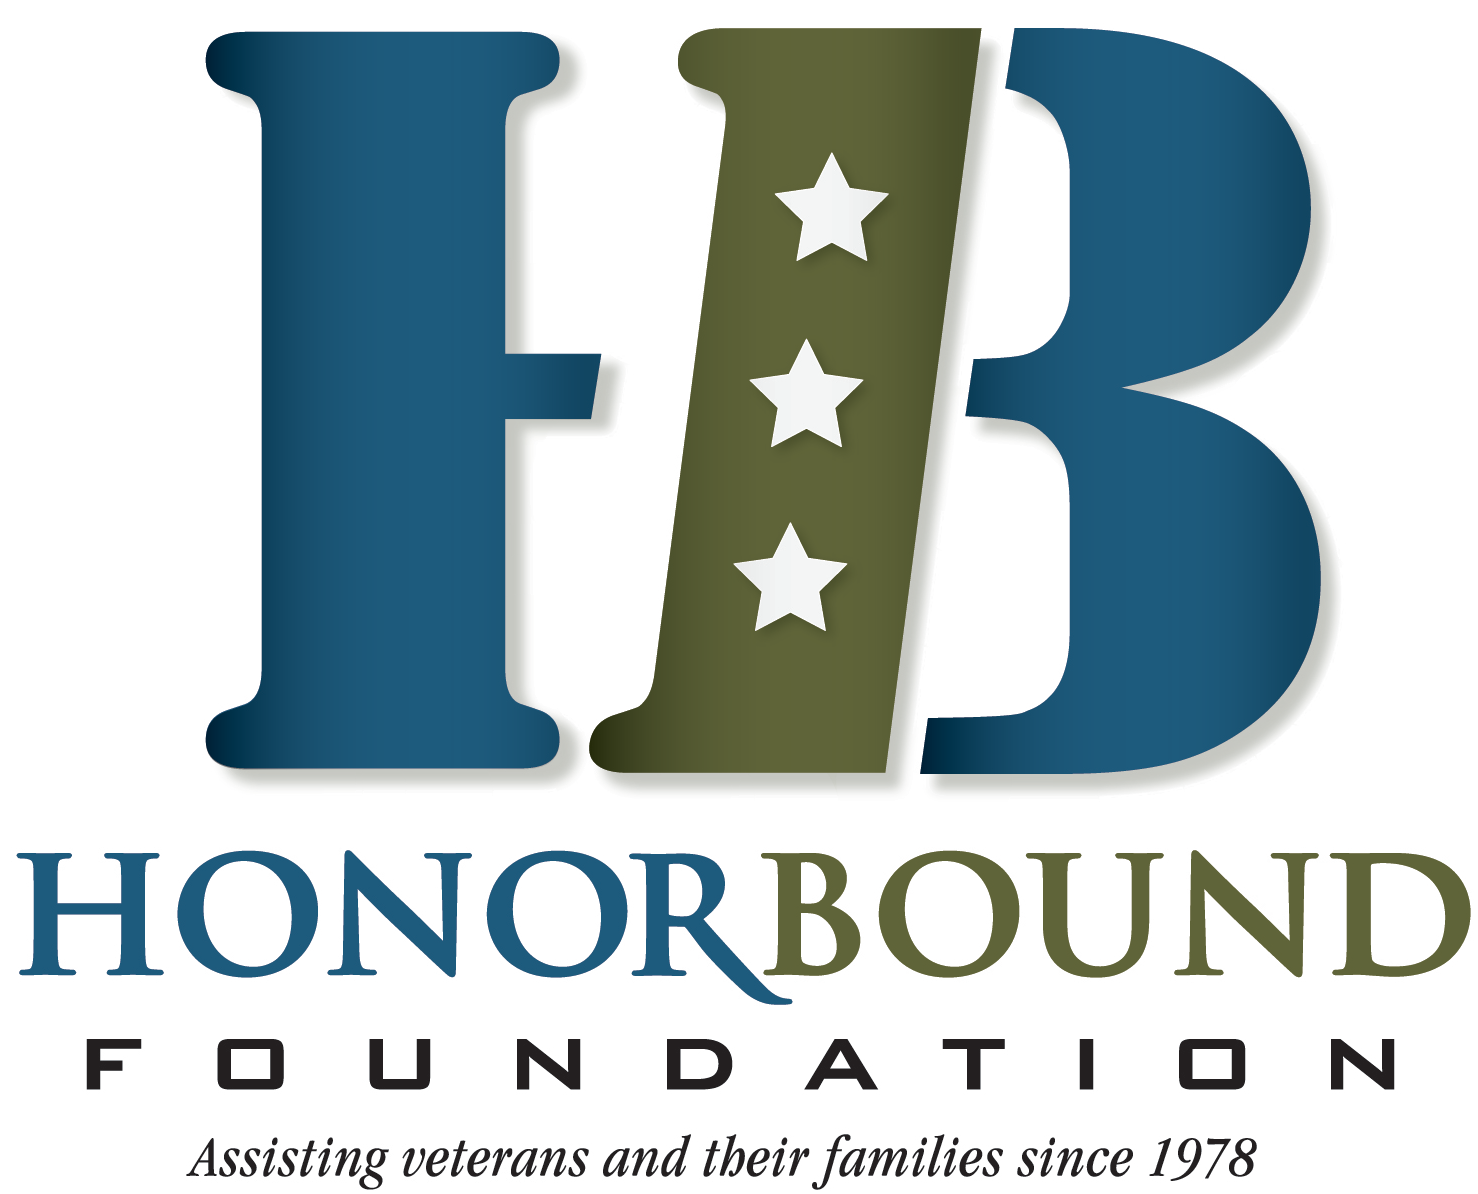 Car Donation to Alaska Charities - HonorBound Foundation - DonatecarUSA.com